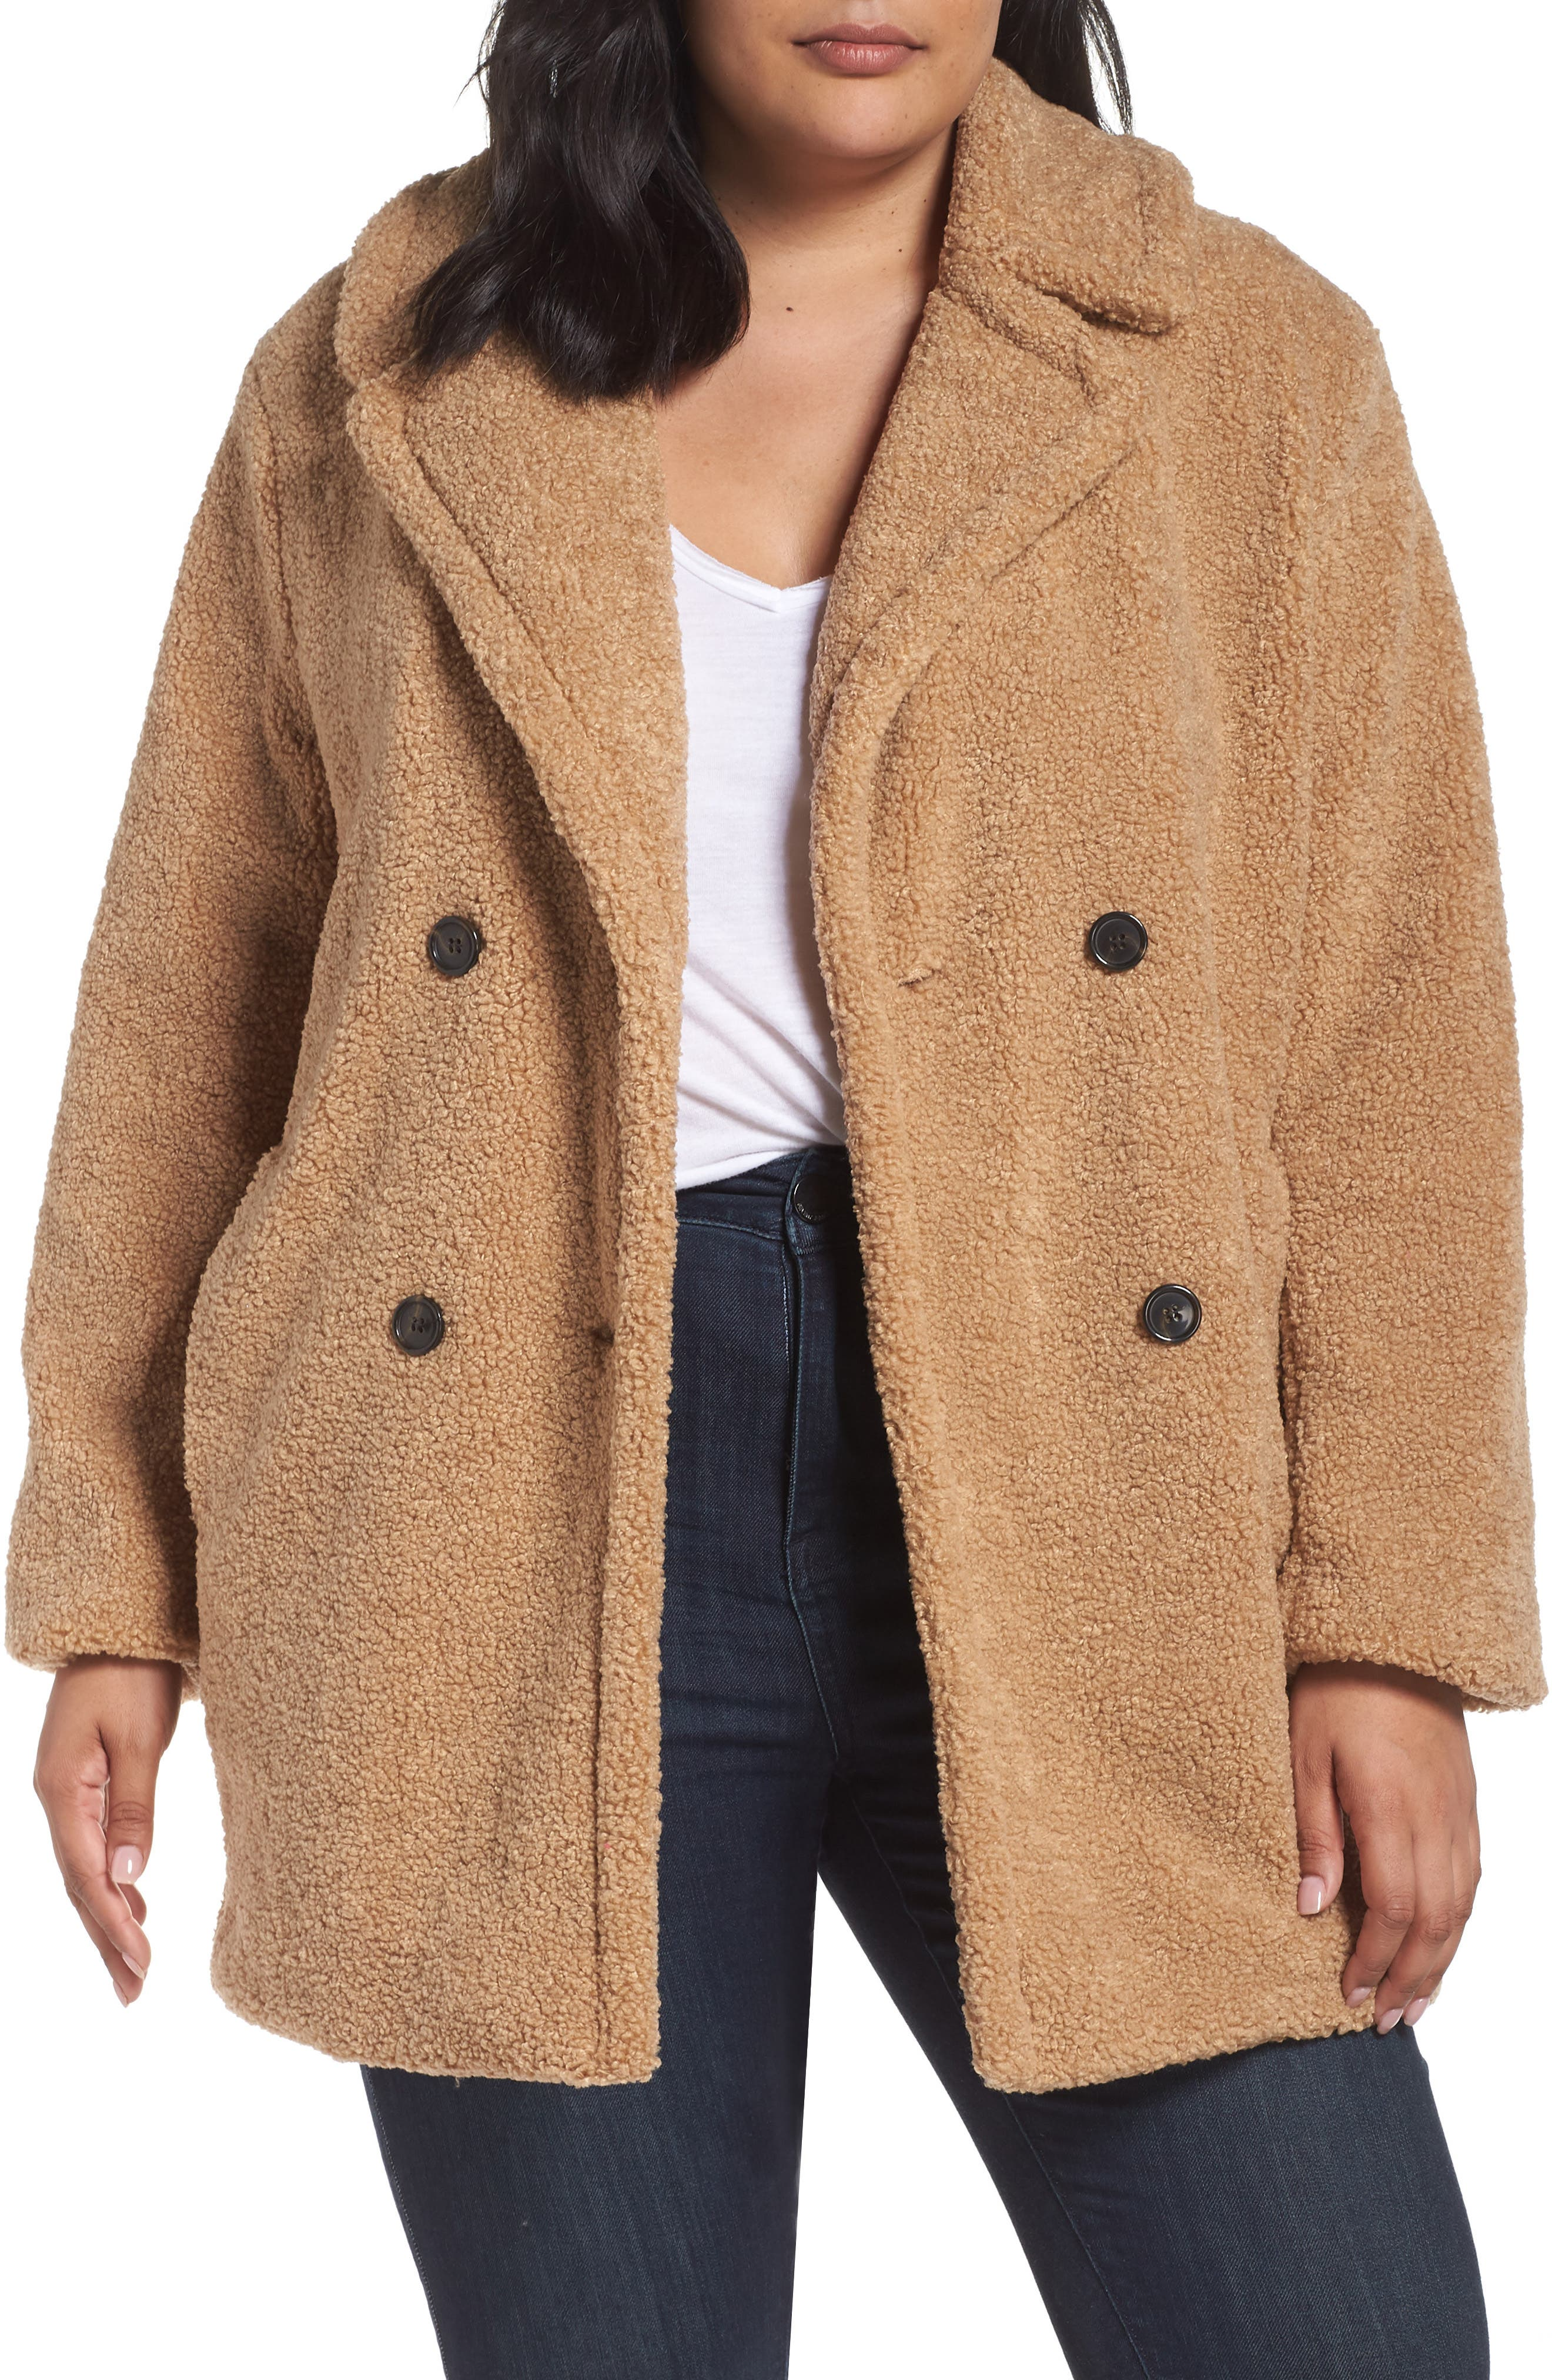 KENSIE,                             Teddy Bear Notch Collar Faux Fur Coat,                             Main thumbnail 1, color,                             788